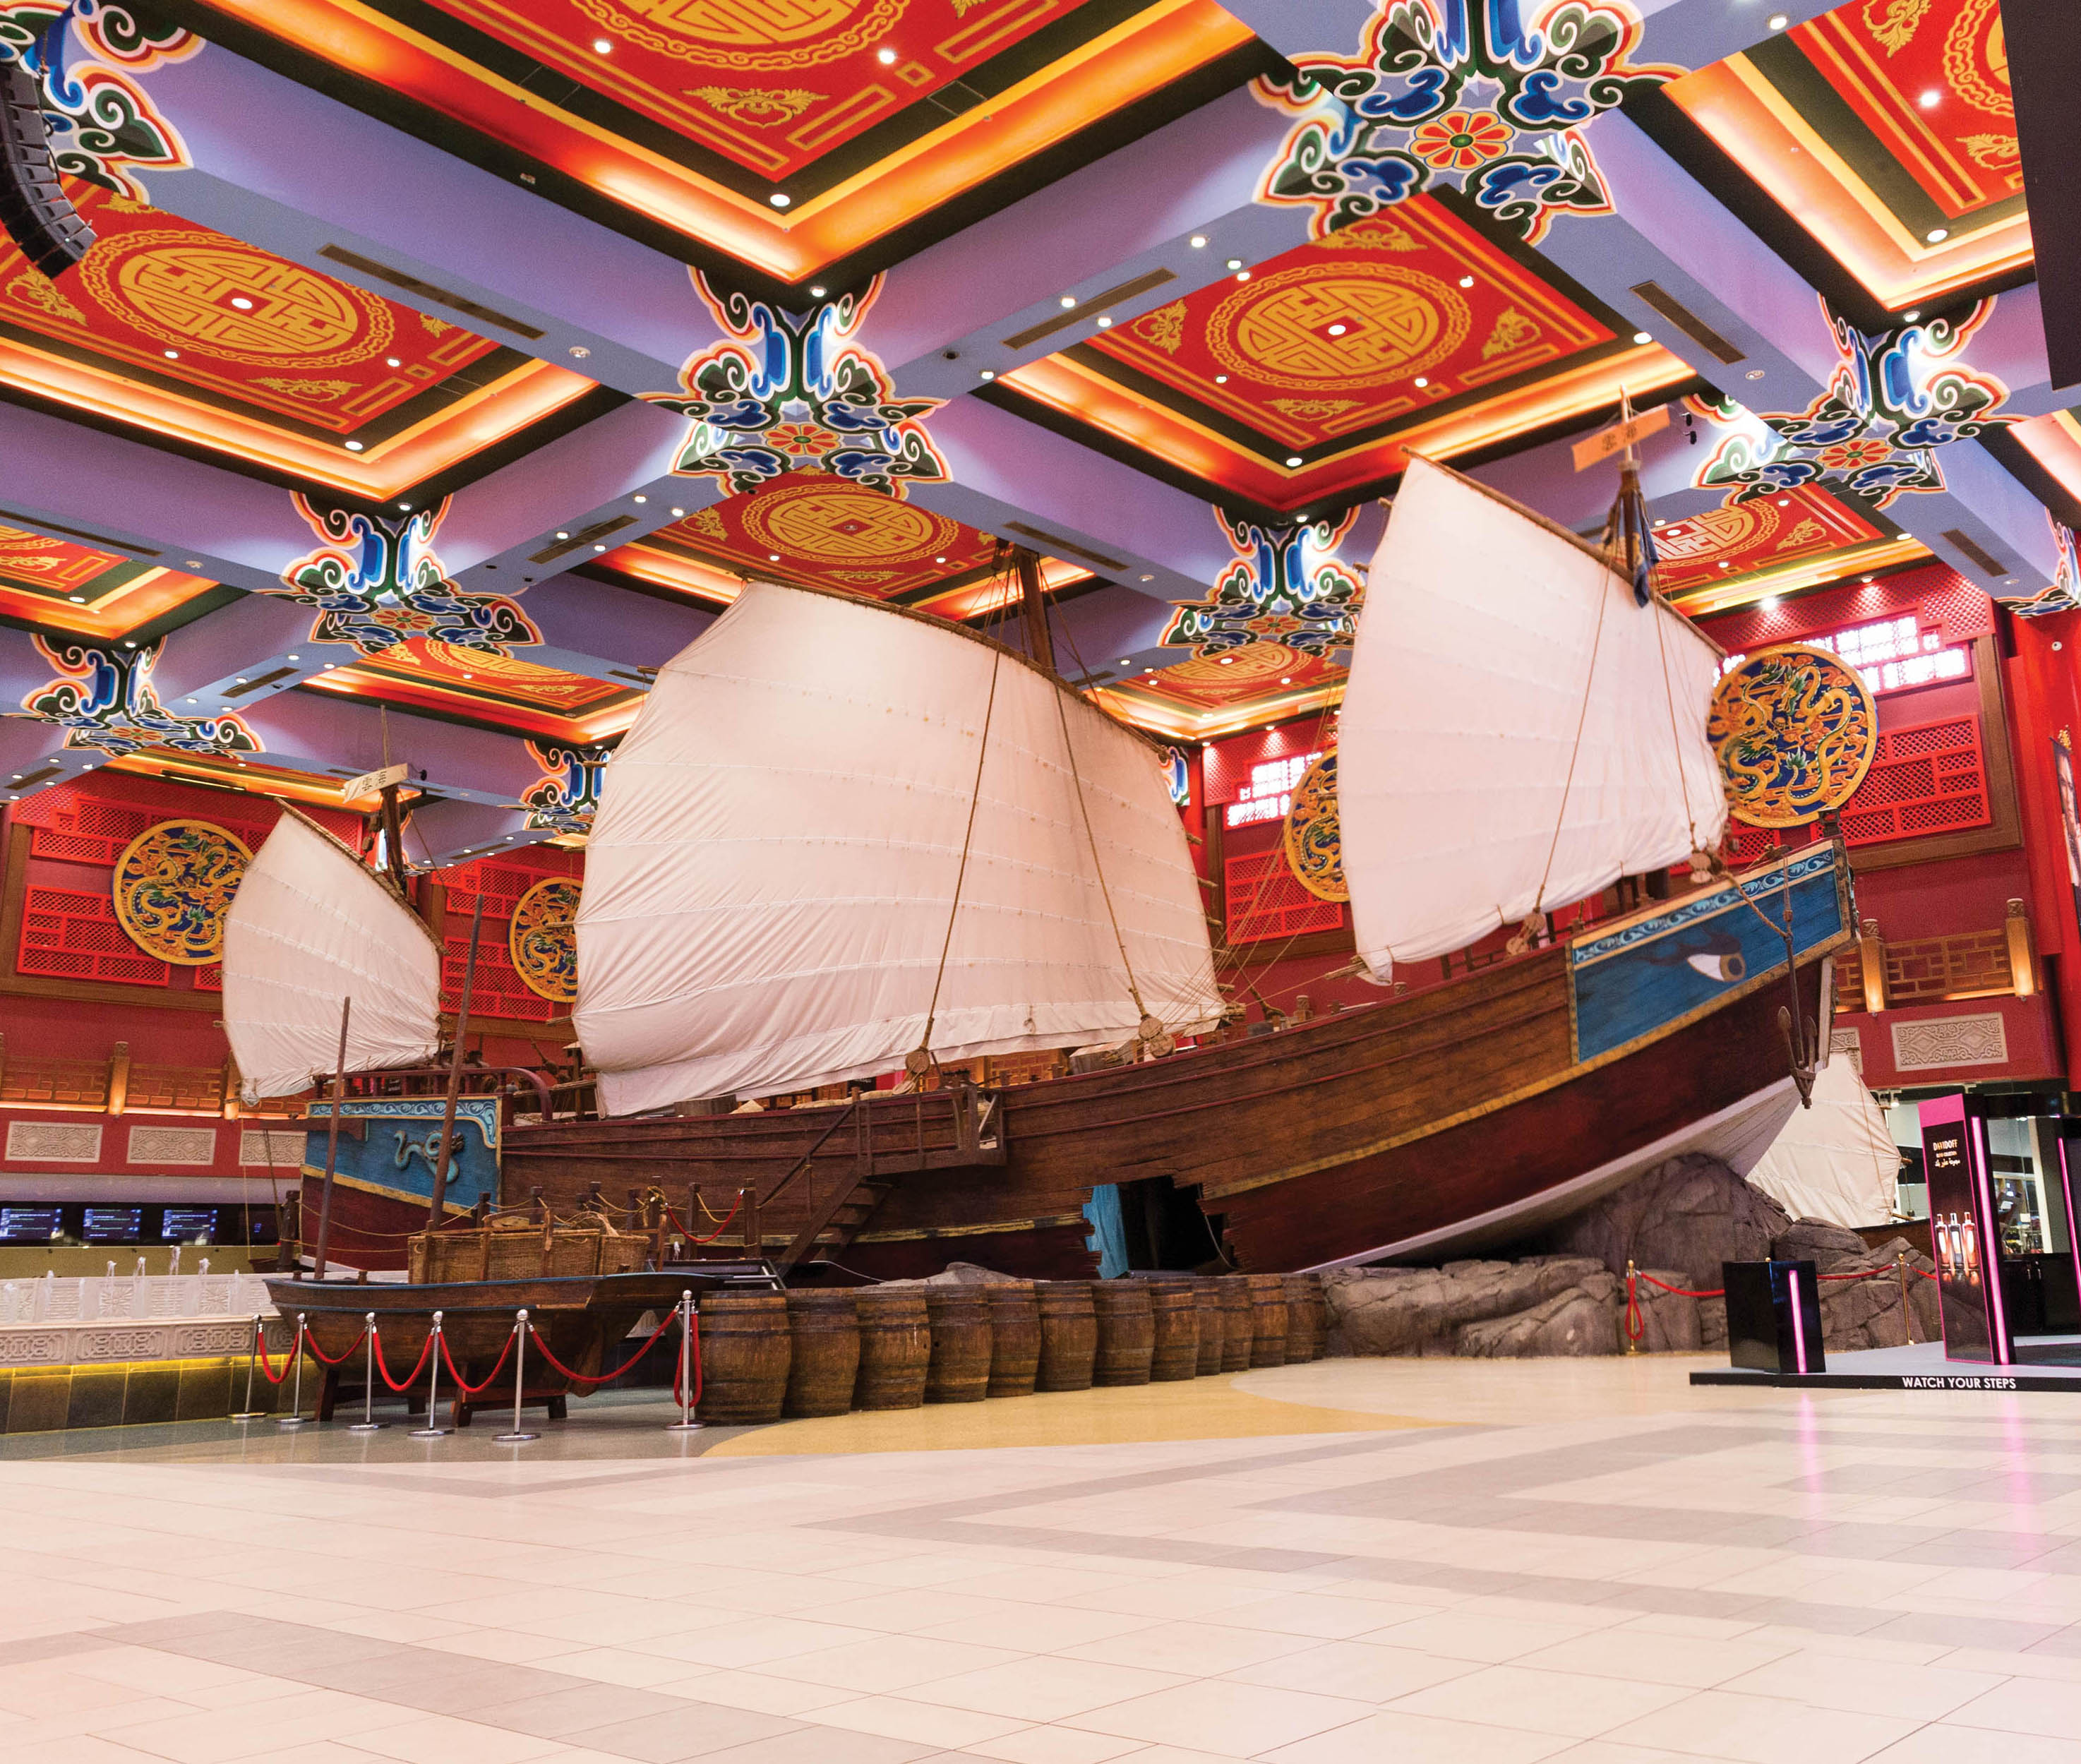 Life-Size Travel Game Takes Visitors On A Voyage Of Discovery At Ibn Battuta Mall This DSF